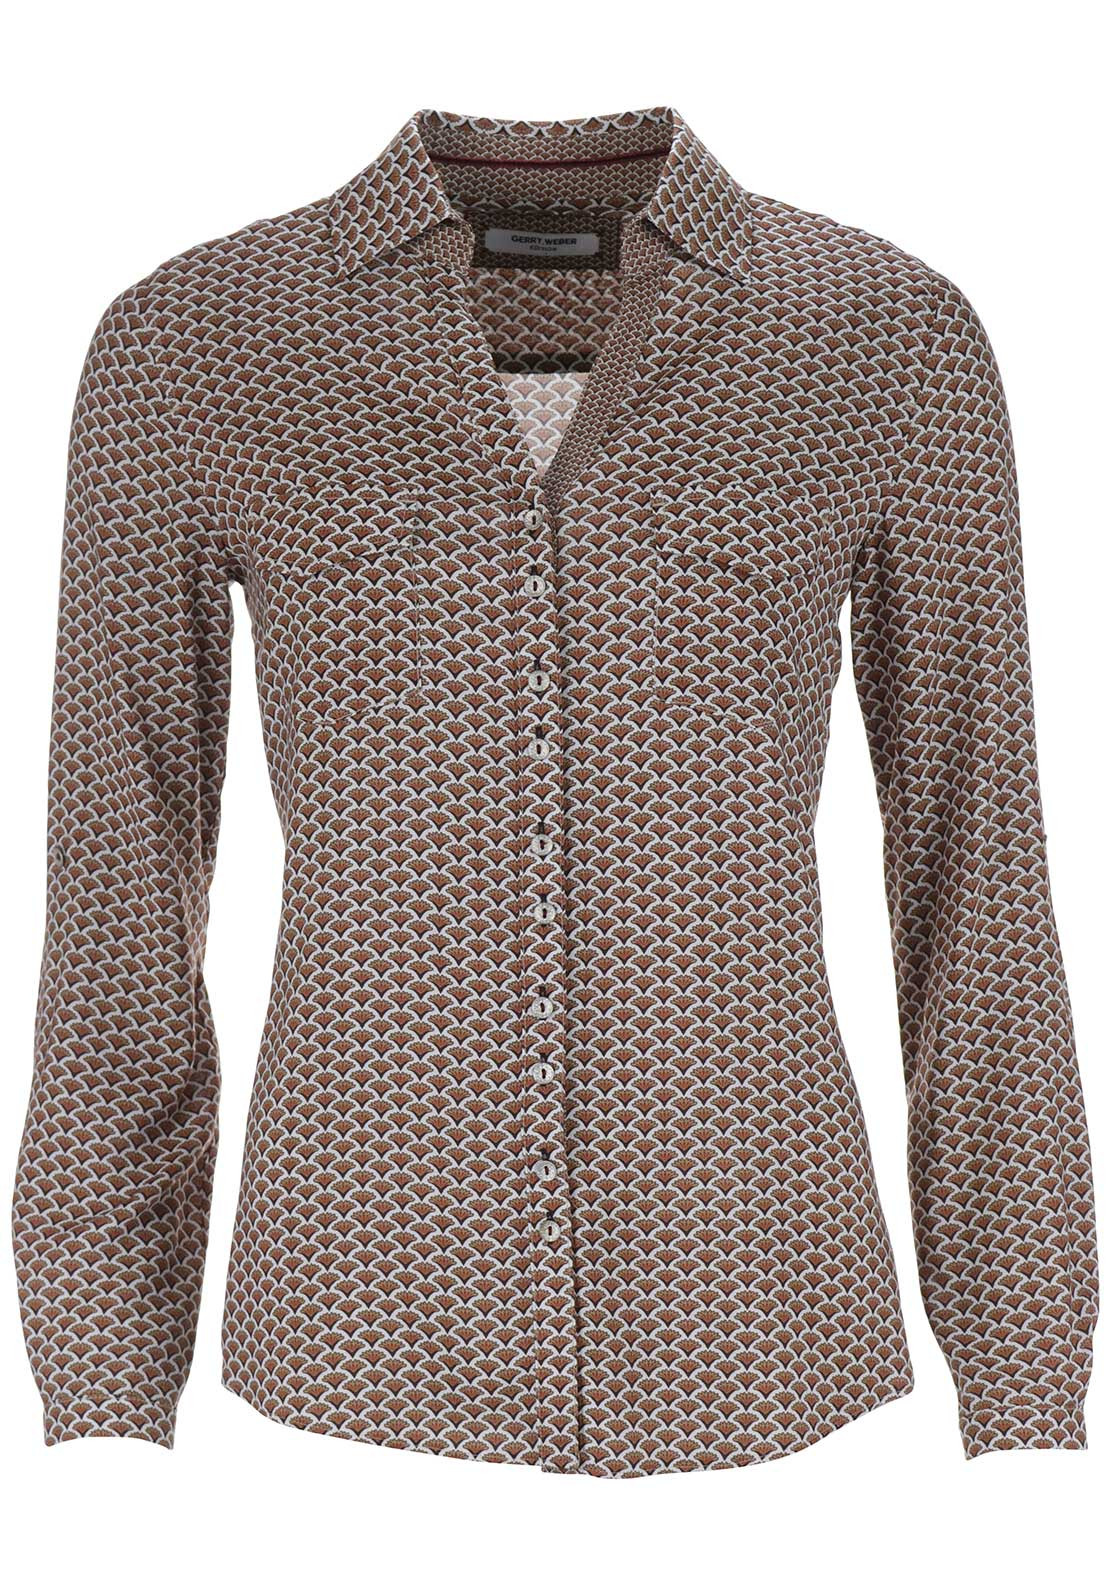 Gerry Weber Printed Long Sleeve Blouse, Rust